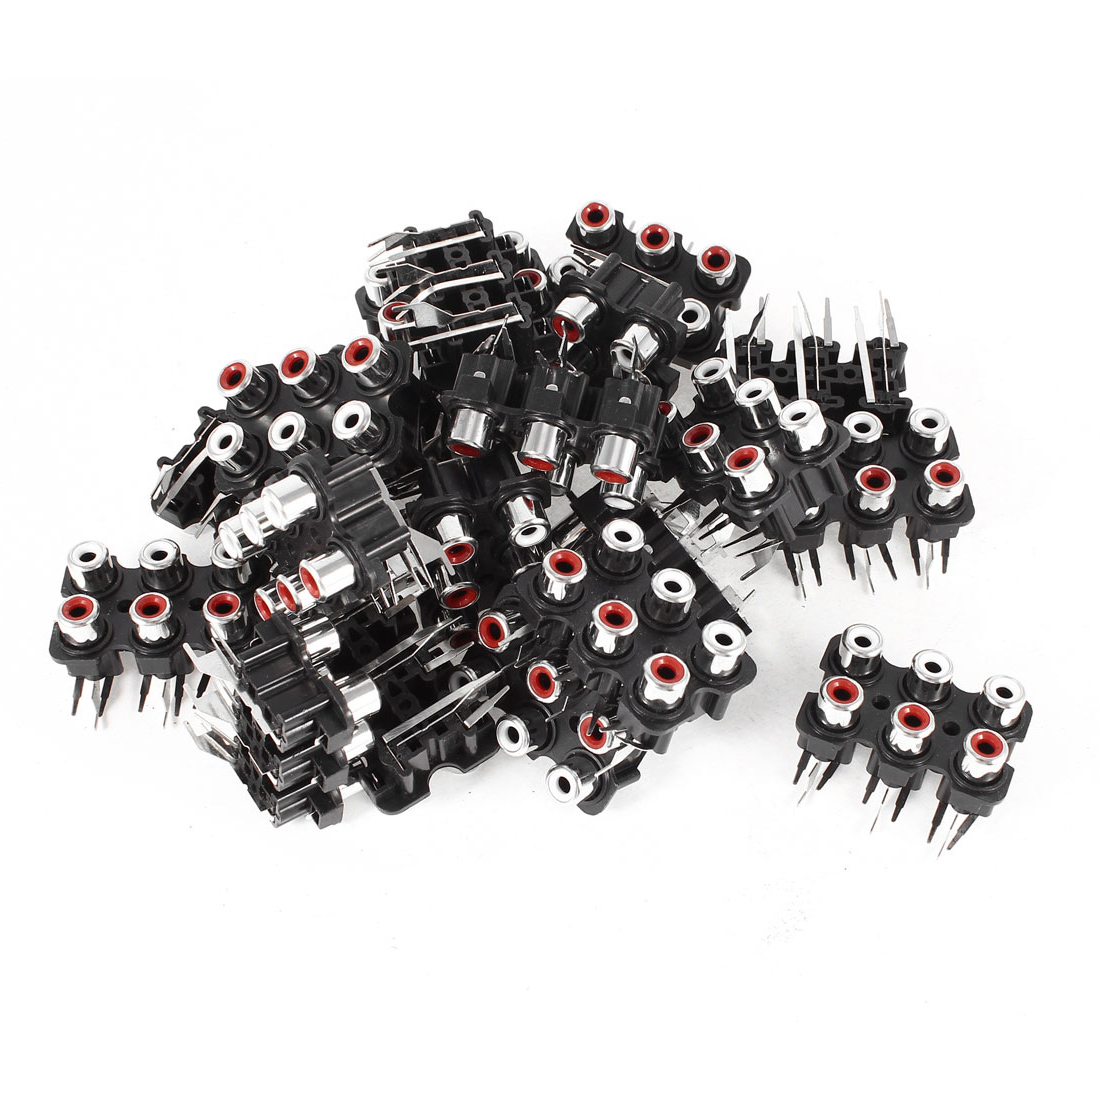 20 Pcs 6-Female RCA PCB Mount Outlet Jack Connector Socket Black